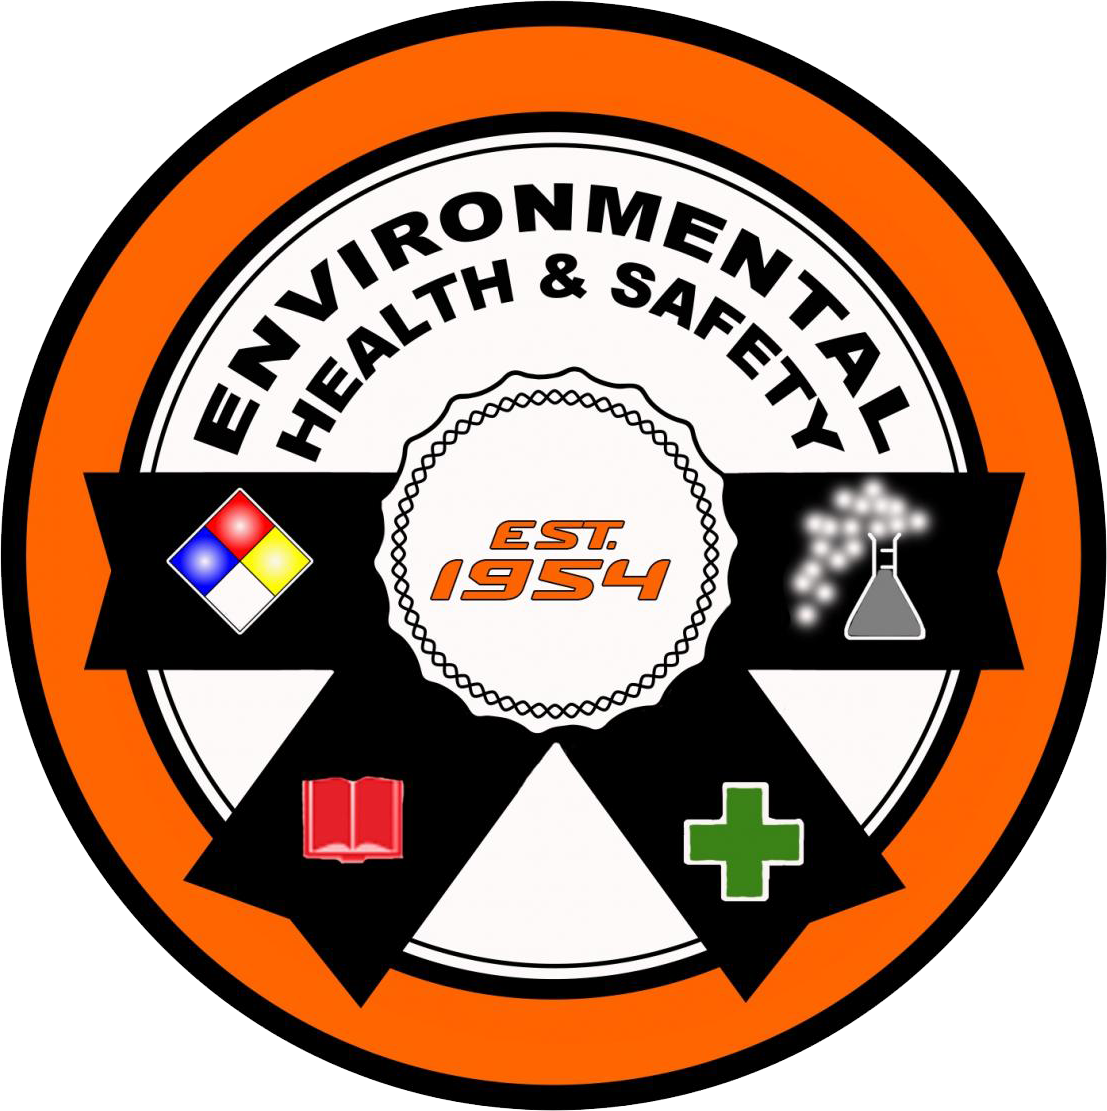 Environment clipart environmental safety. Health and ehs seal